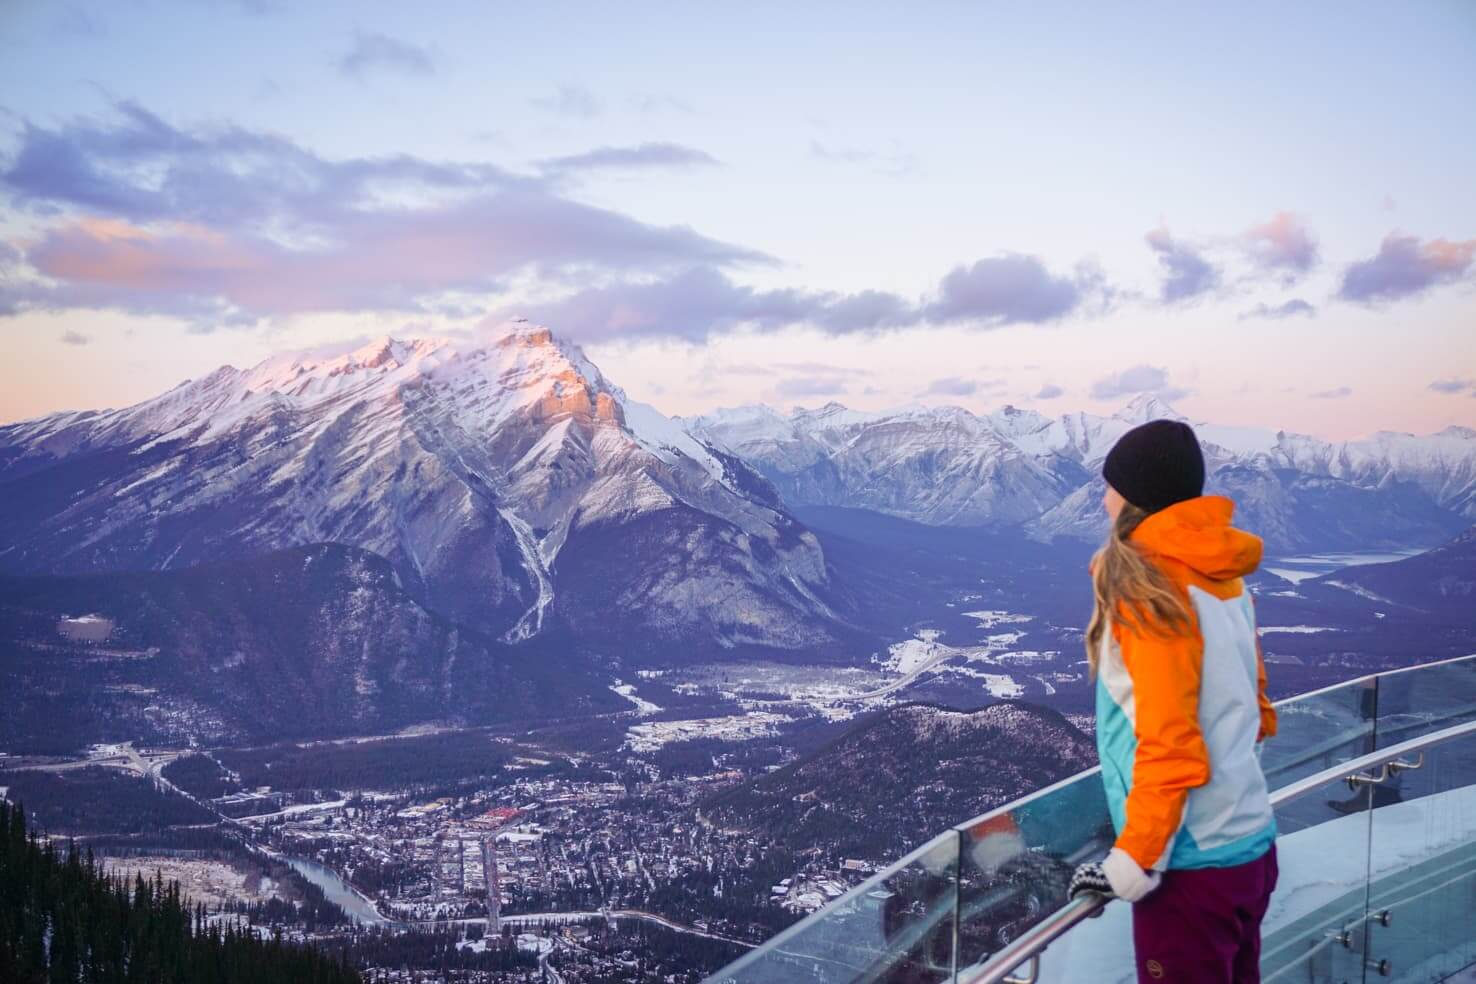 Sulphur Mountain Hike, Banff National Park